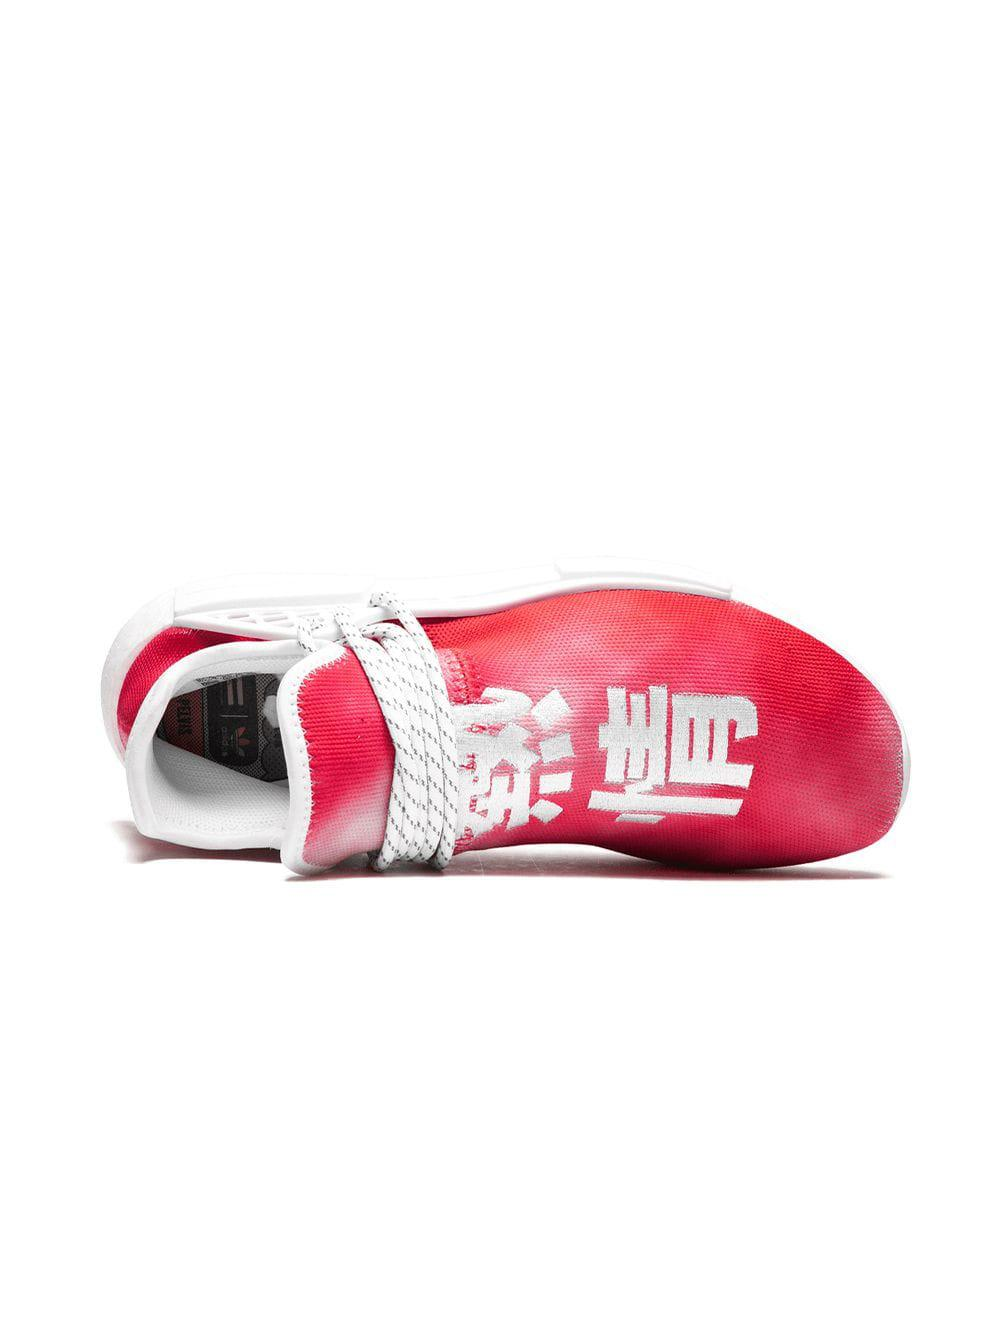 f02defe6a270e1 Adidas Originals - Red Pw Hu Holi Nmd Mc Sneakers for Men - Lyst. View  fullscreen